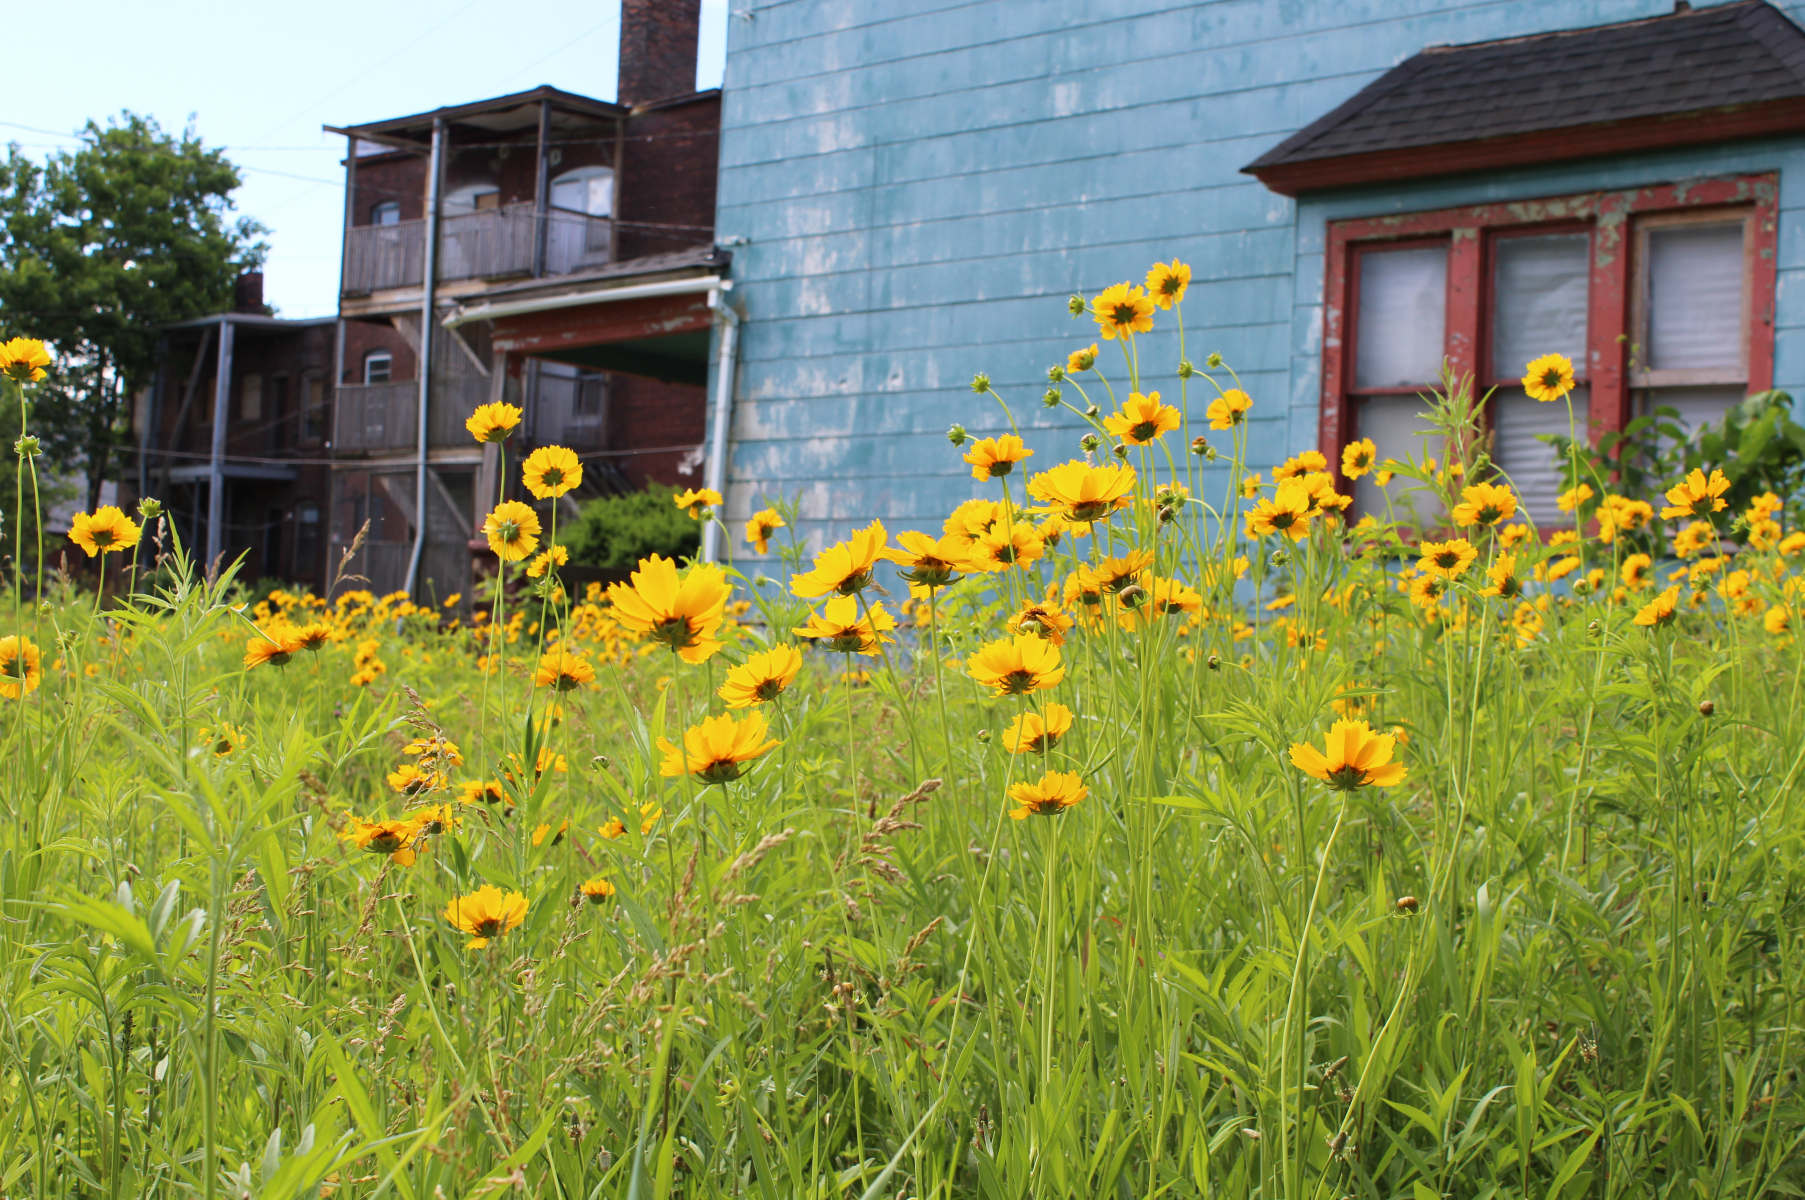 A seven-year project that studied conservation practices in vacant lots in Cleveland, Ohio, also provides insights into how to help residents feel ownership of those conservation practices.